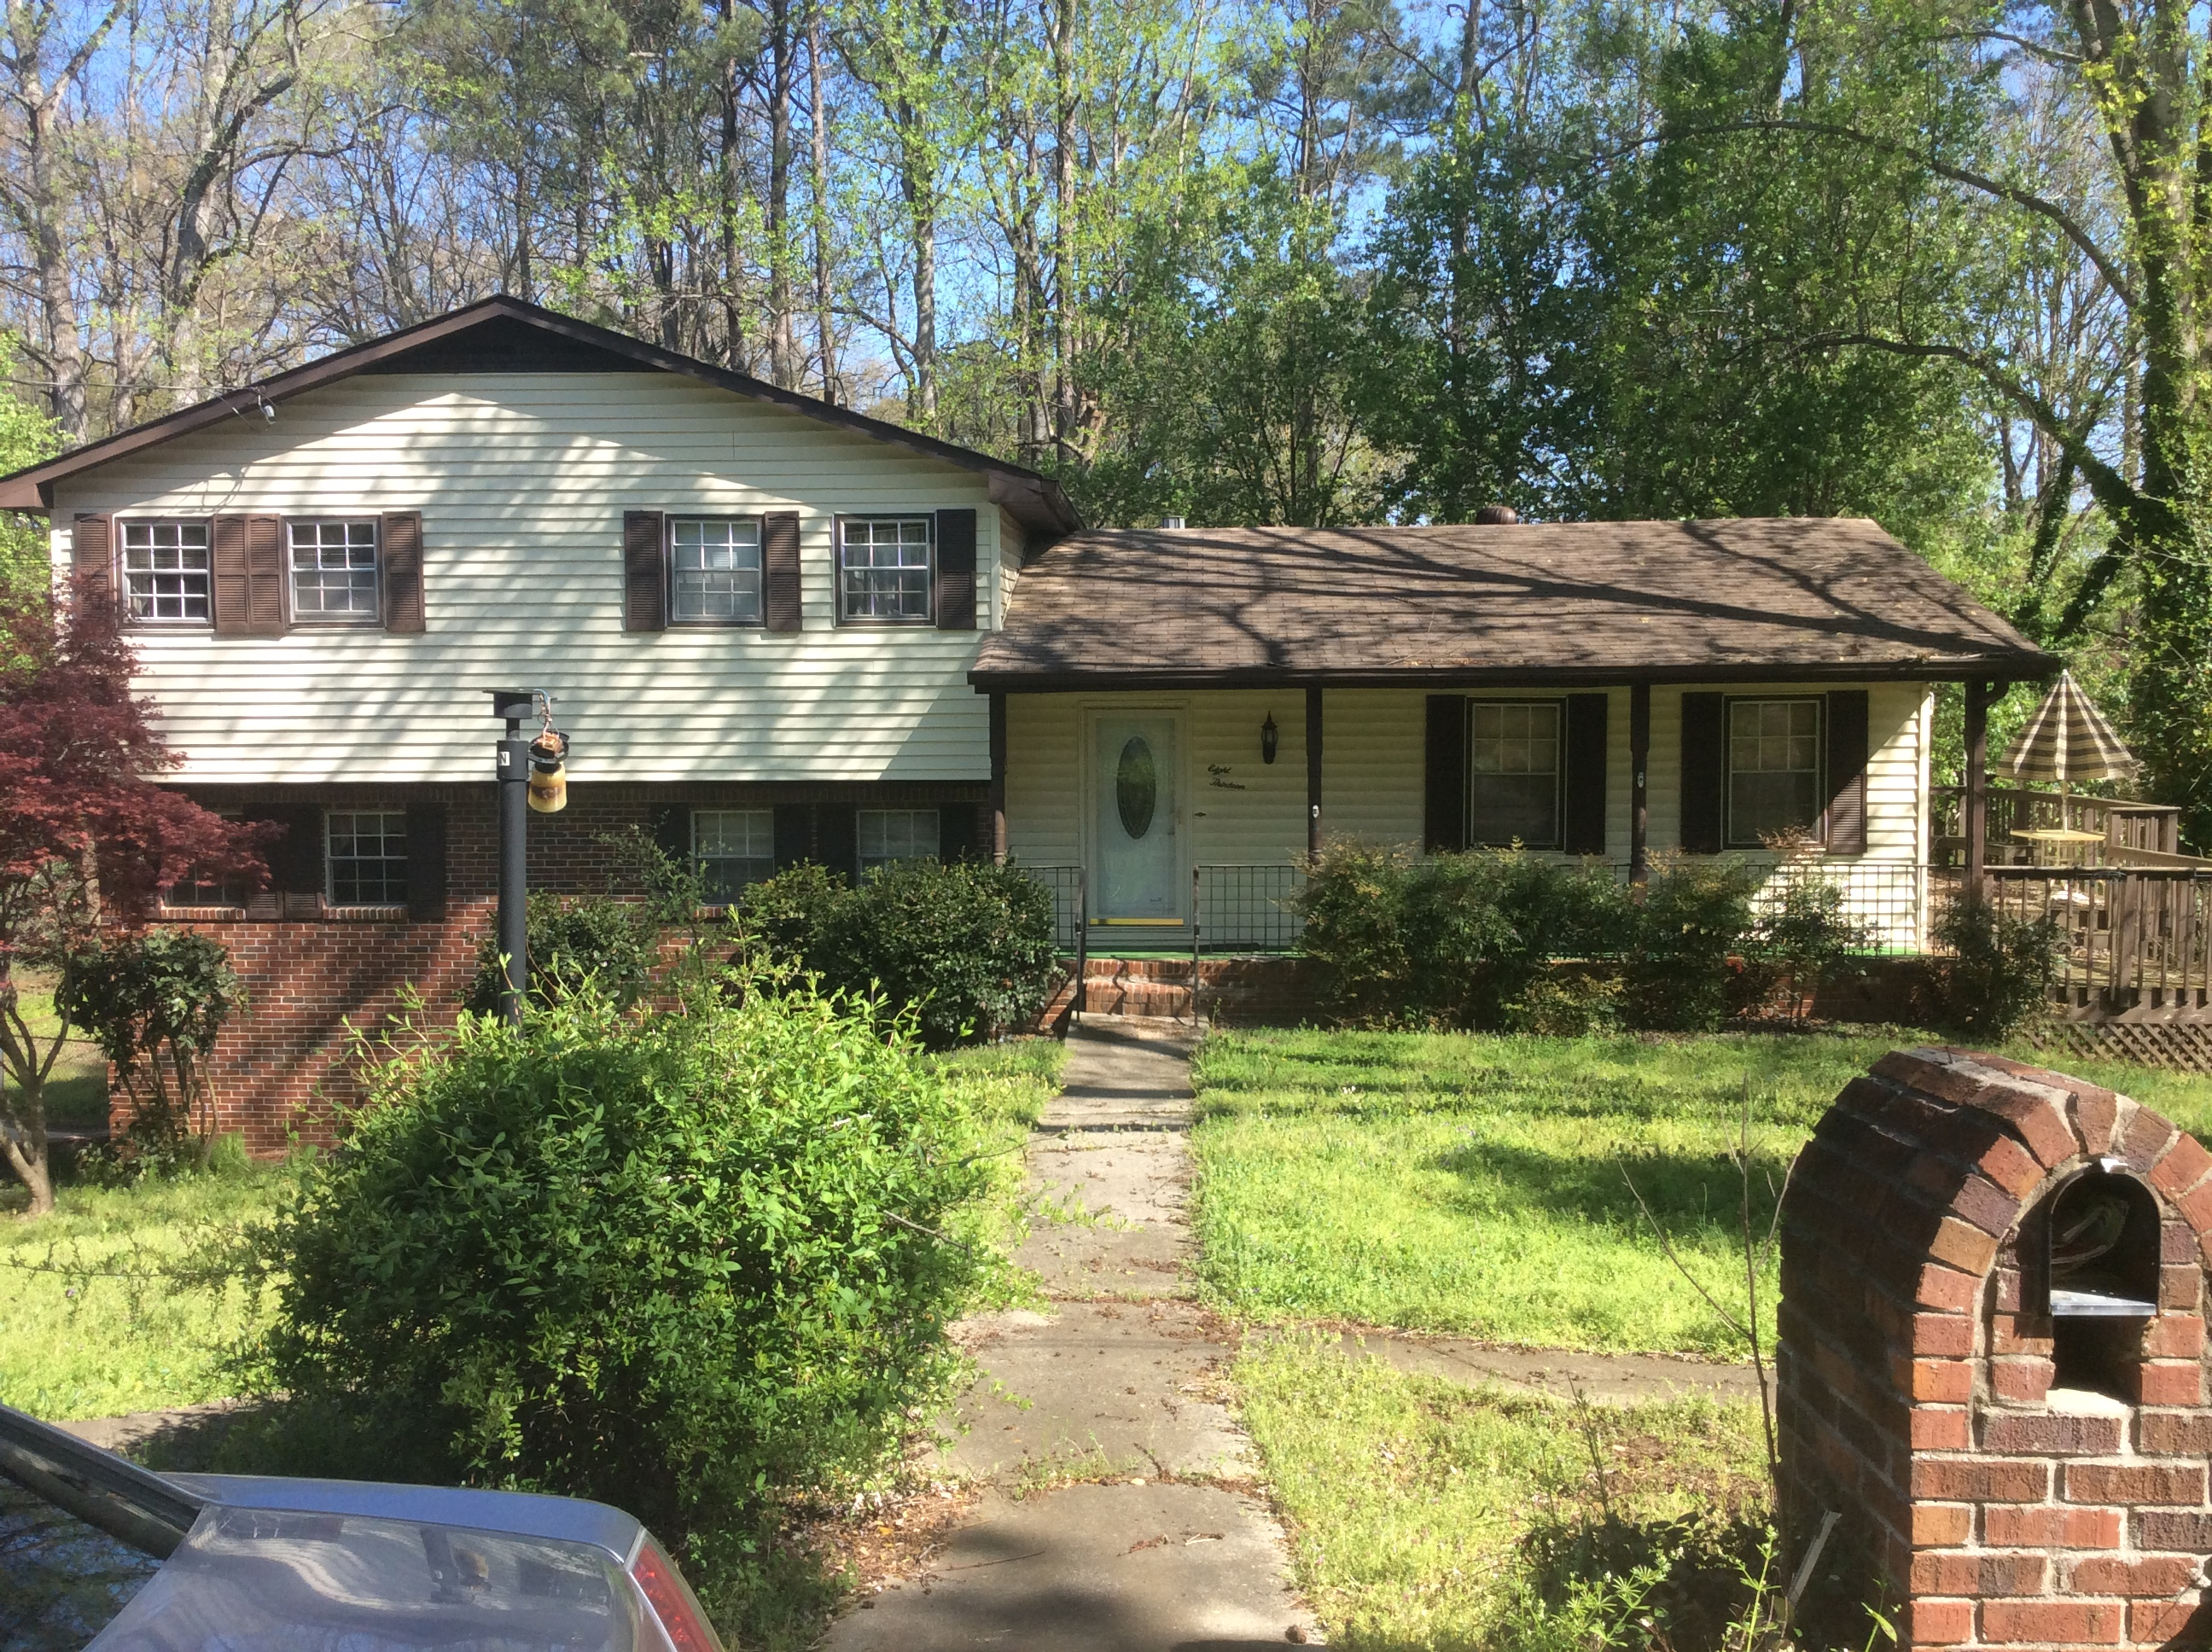 Exterior picture of property purchased in Smyrna, GA before renovation